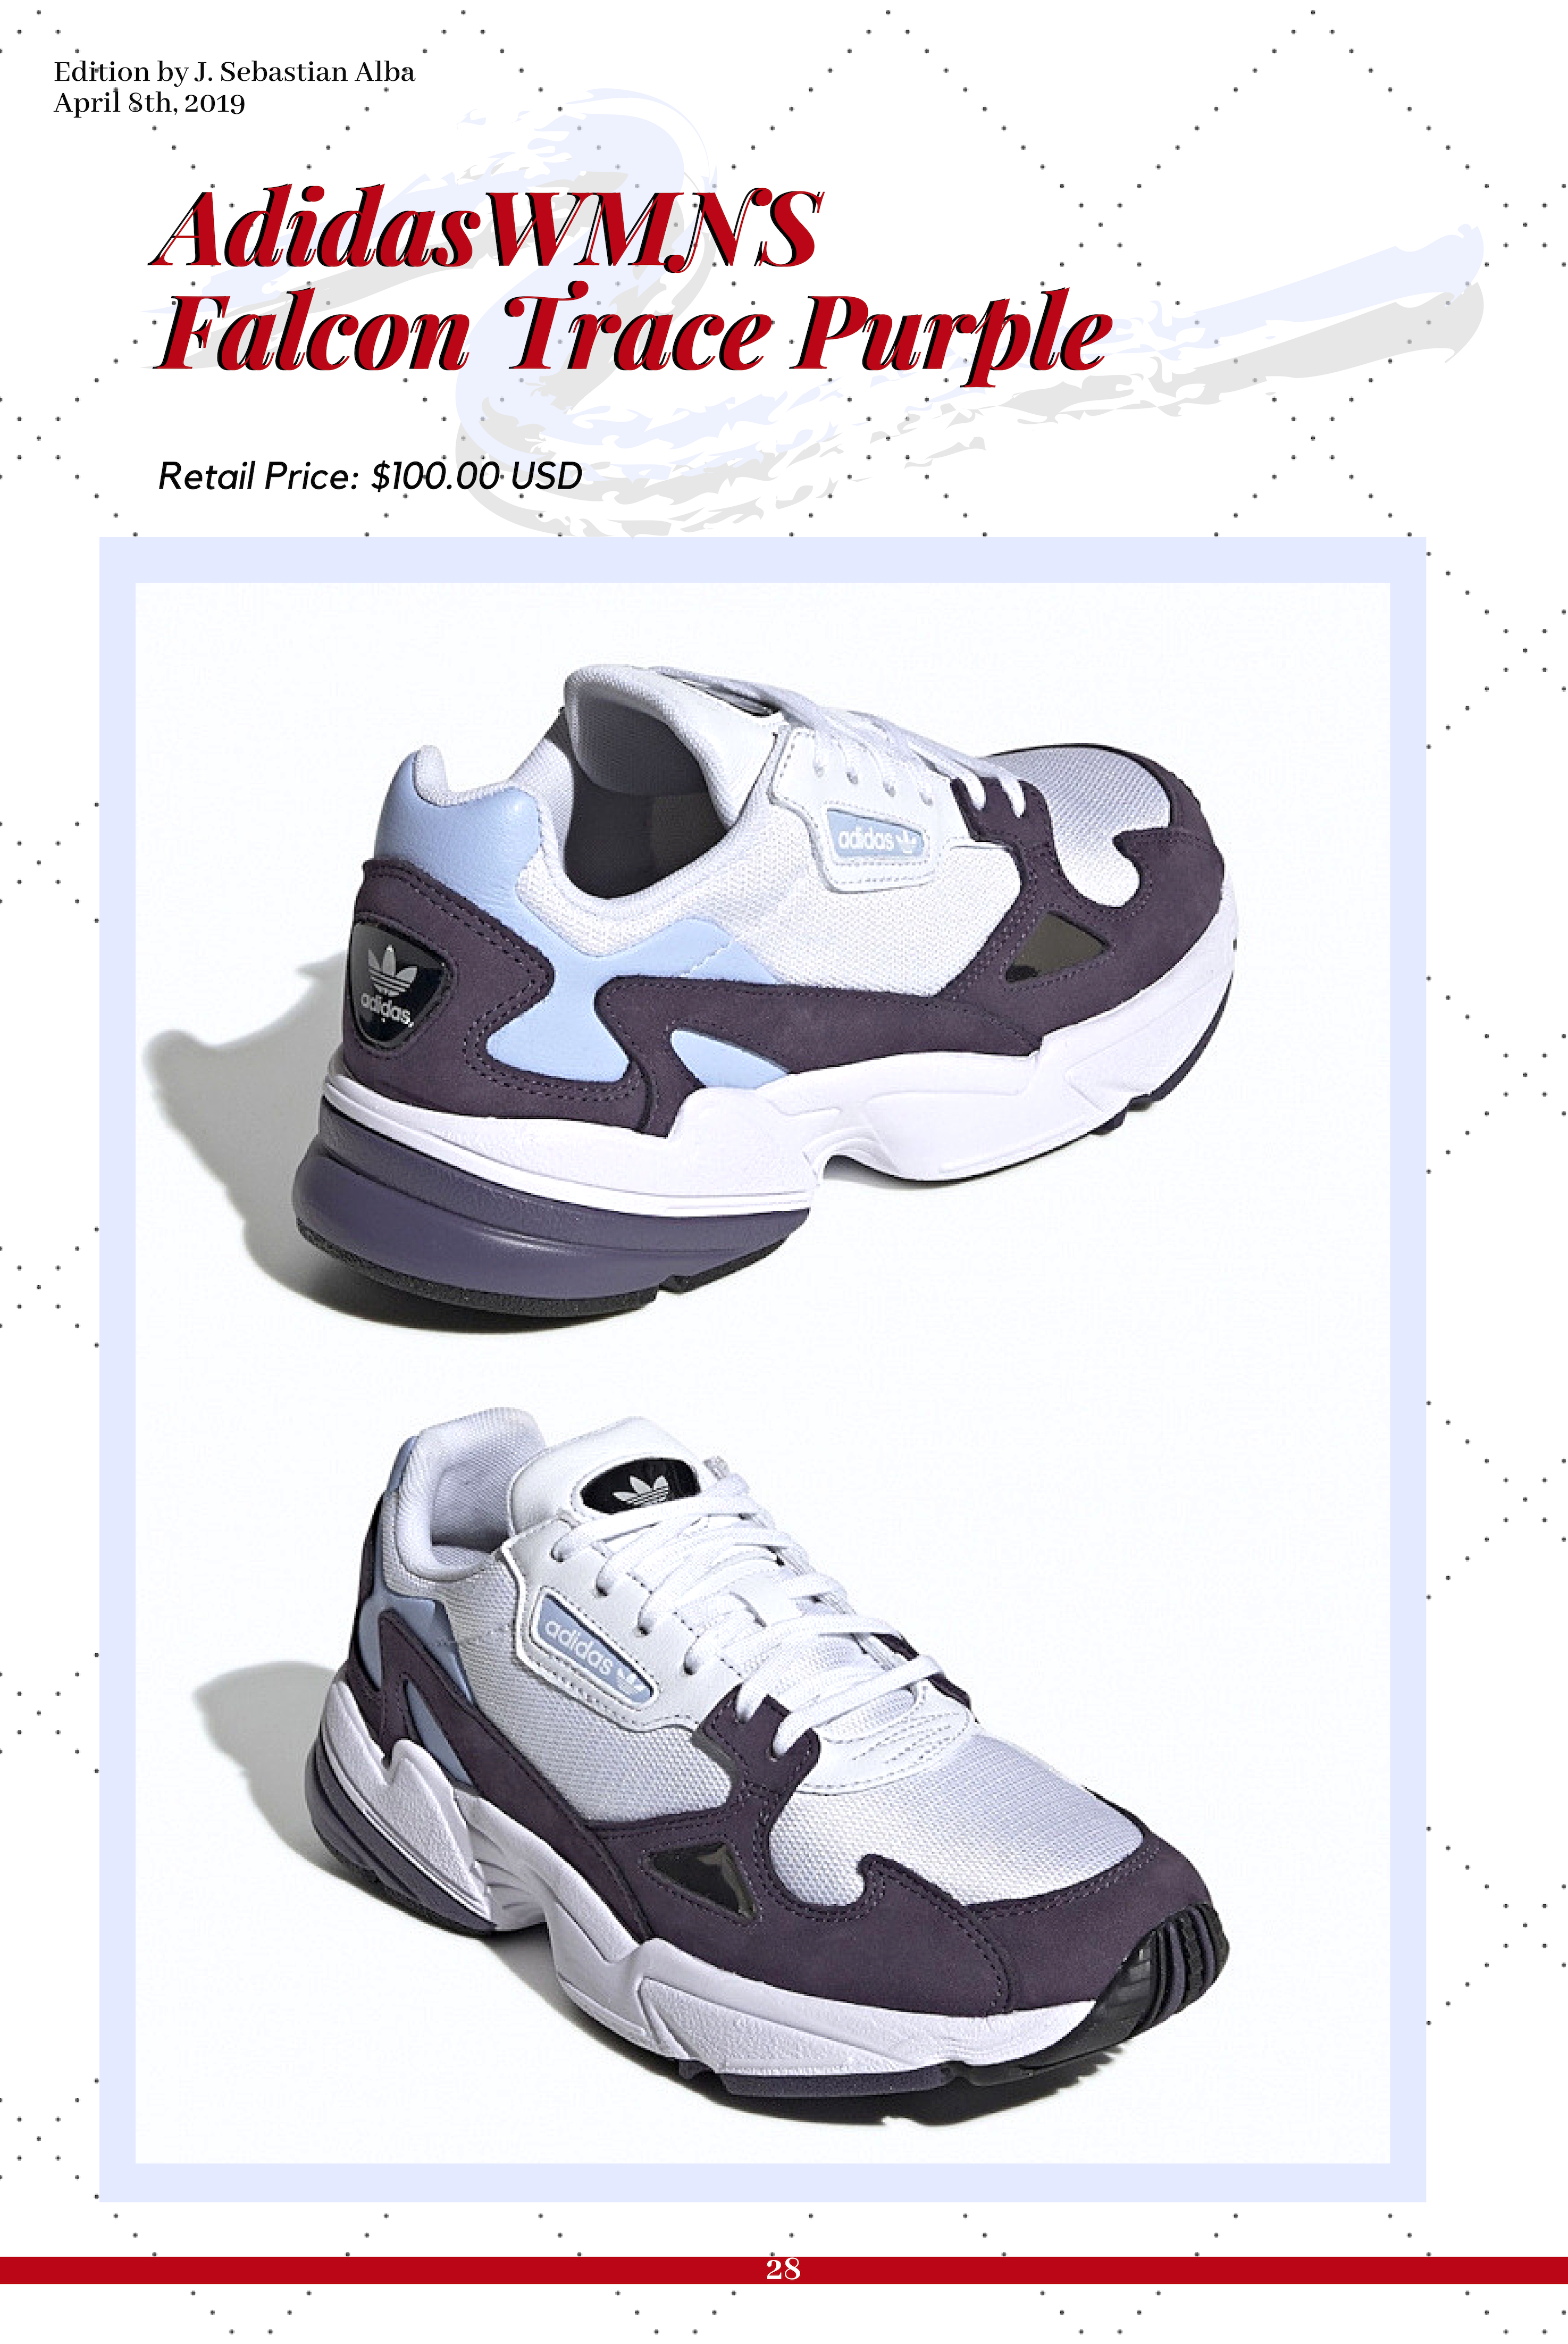 best affordable sneakers 2019